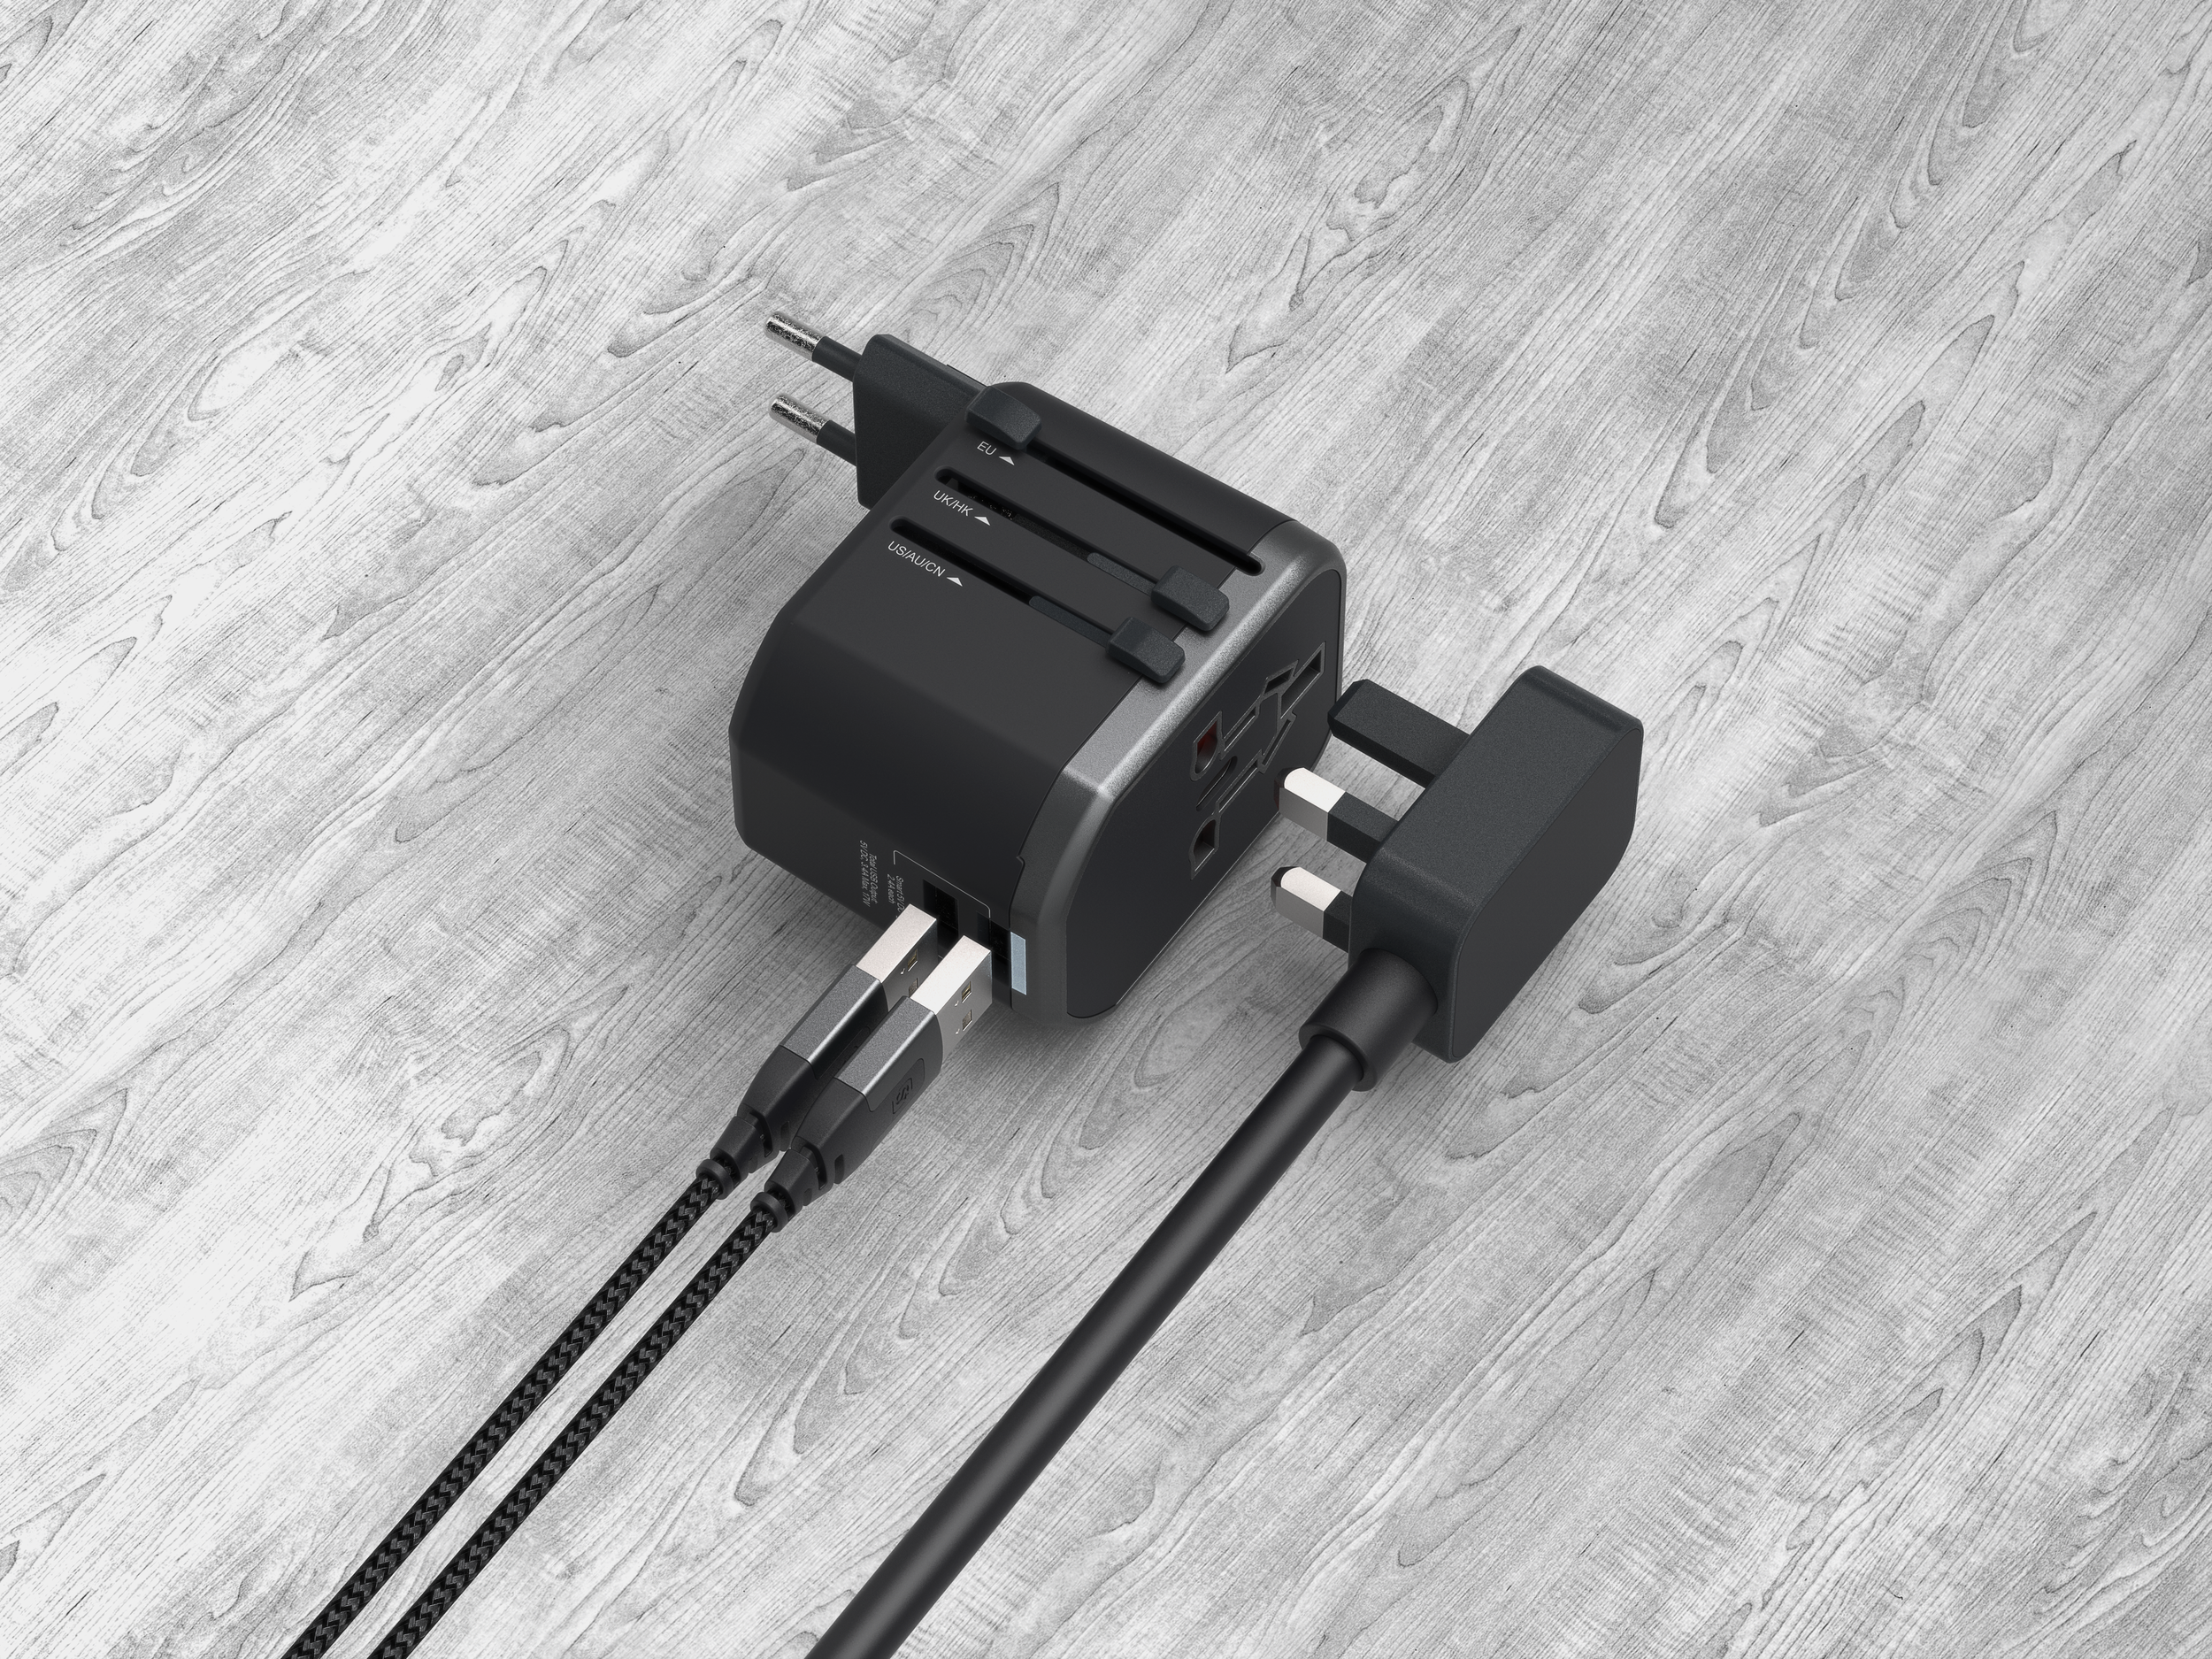 Universal Travel Adapter - All-in-1 Compact Design